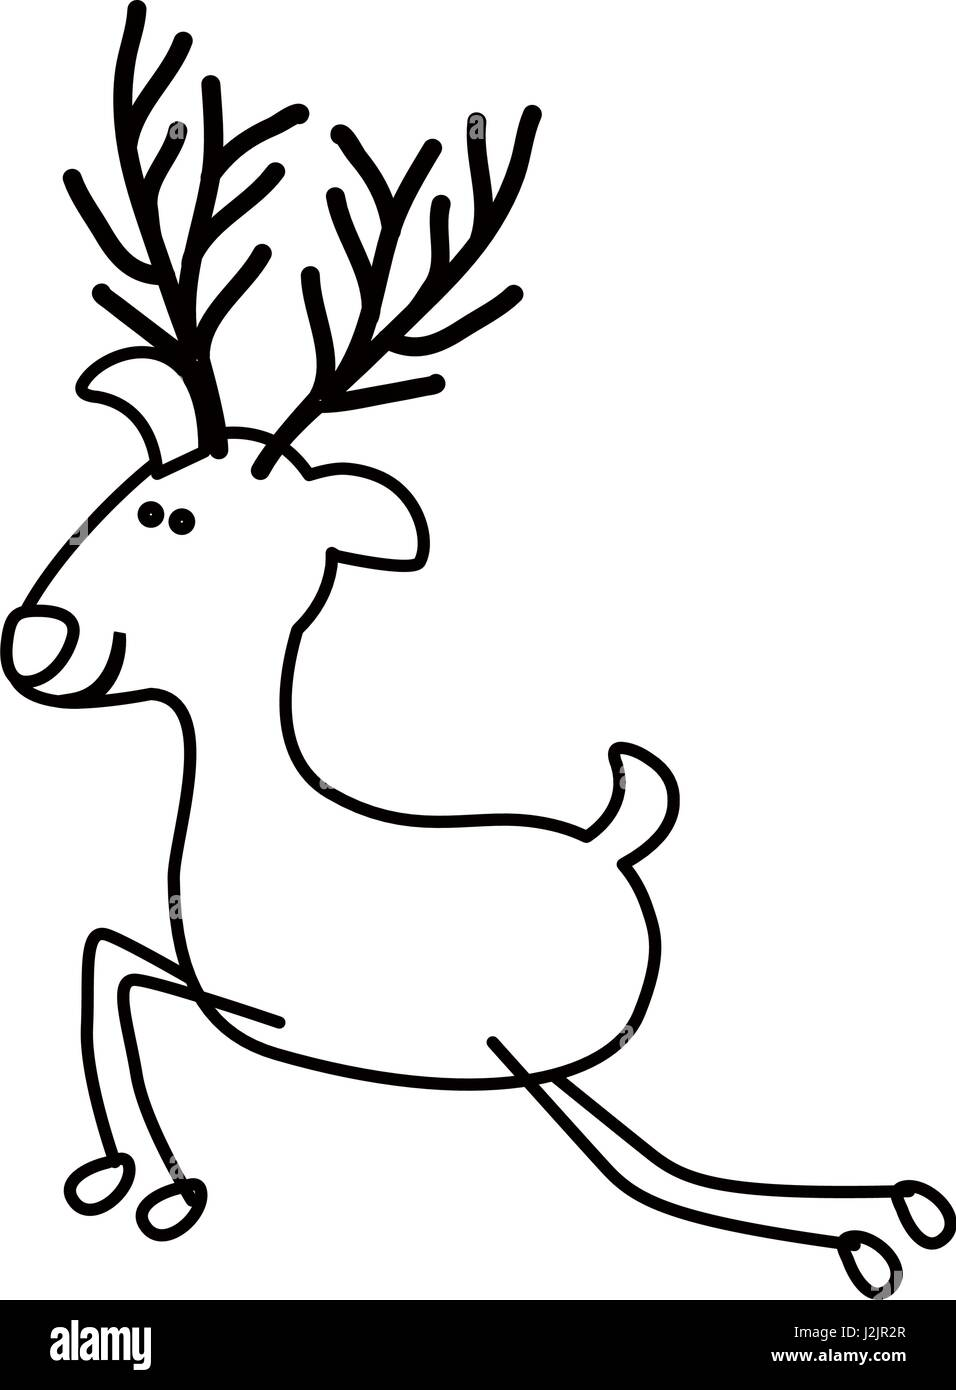 reindeer black and white stock photos u0026 images alamy